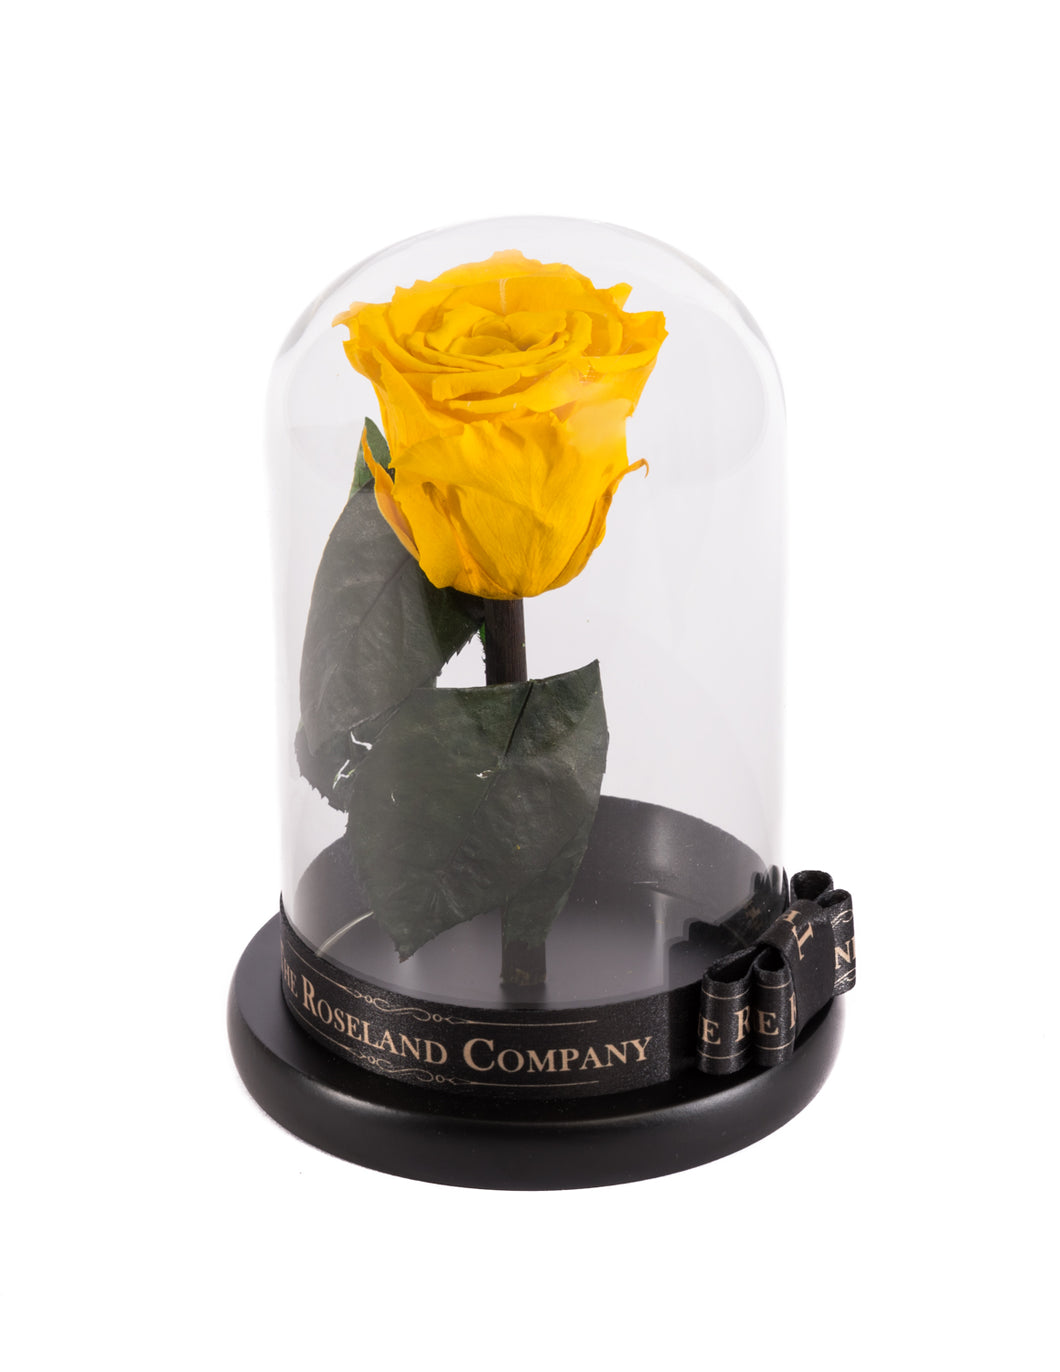 As seen in Beauty and the Beast: Yellow Eternity Rose, Under the Dome